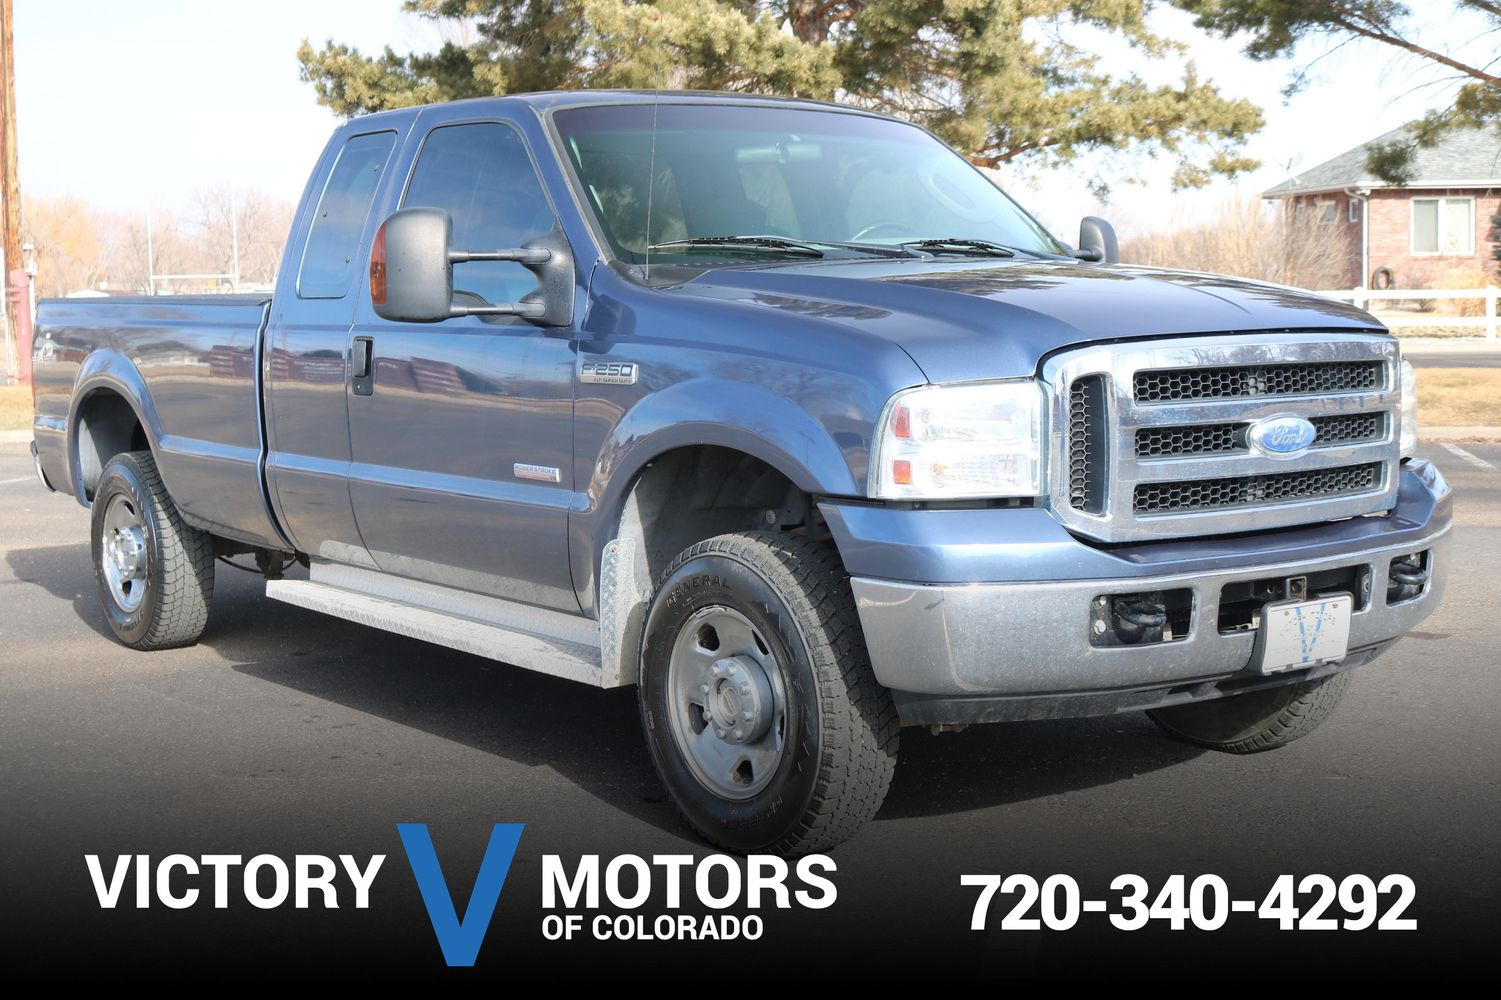 2006 Ford F 250 Super Duty Xlt Victory Motors Of Colorado